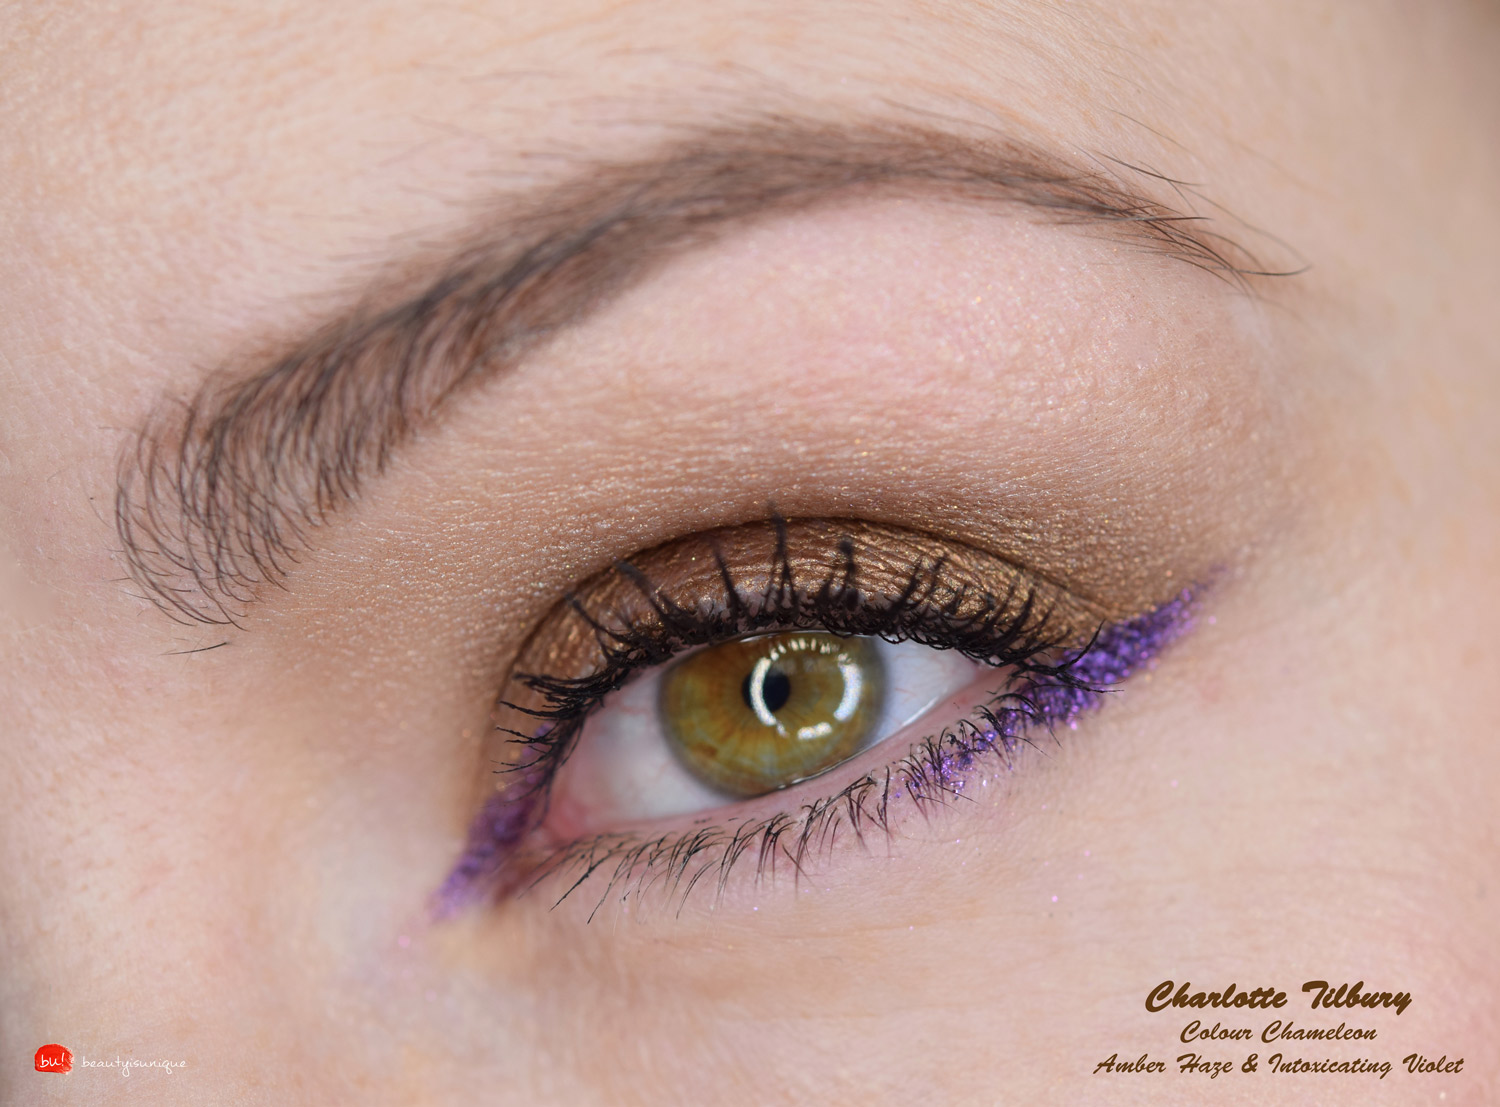 Charlotte-tilbury-intoxicating-violet